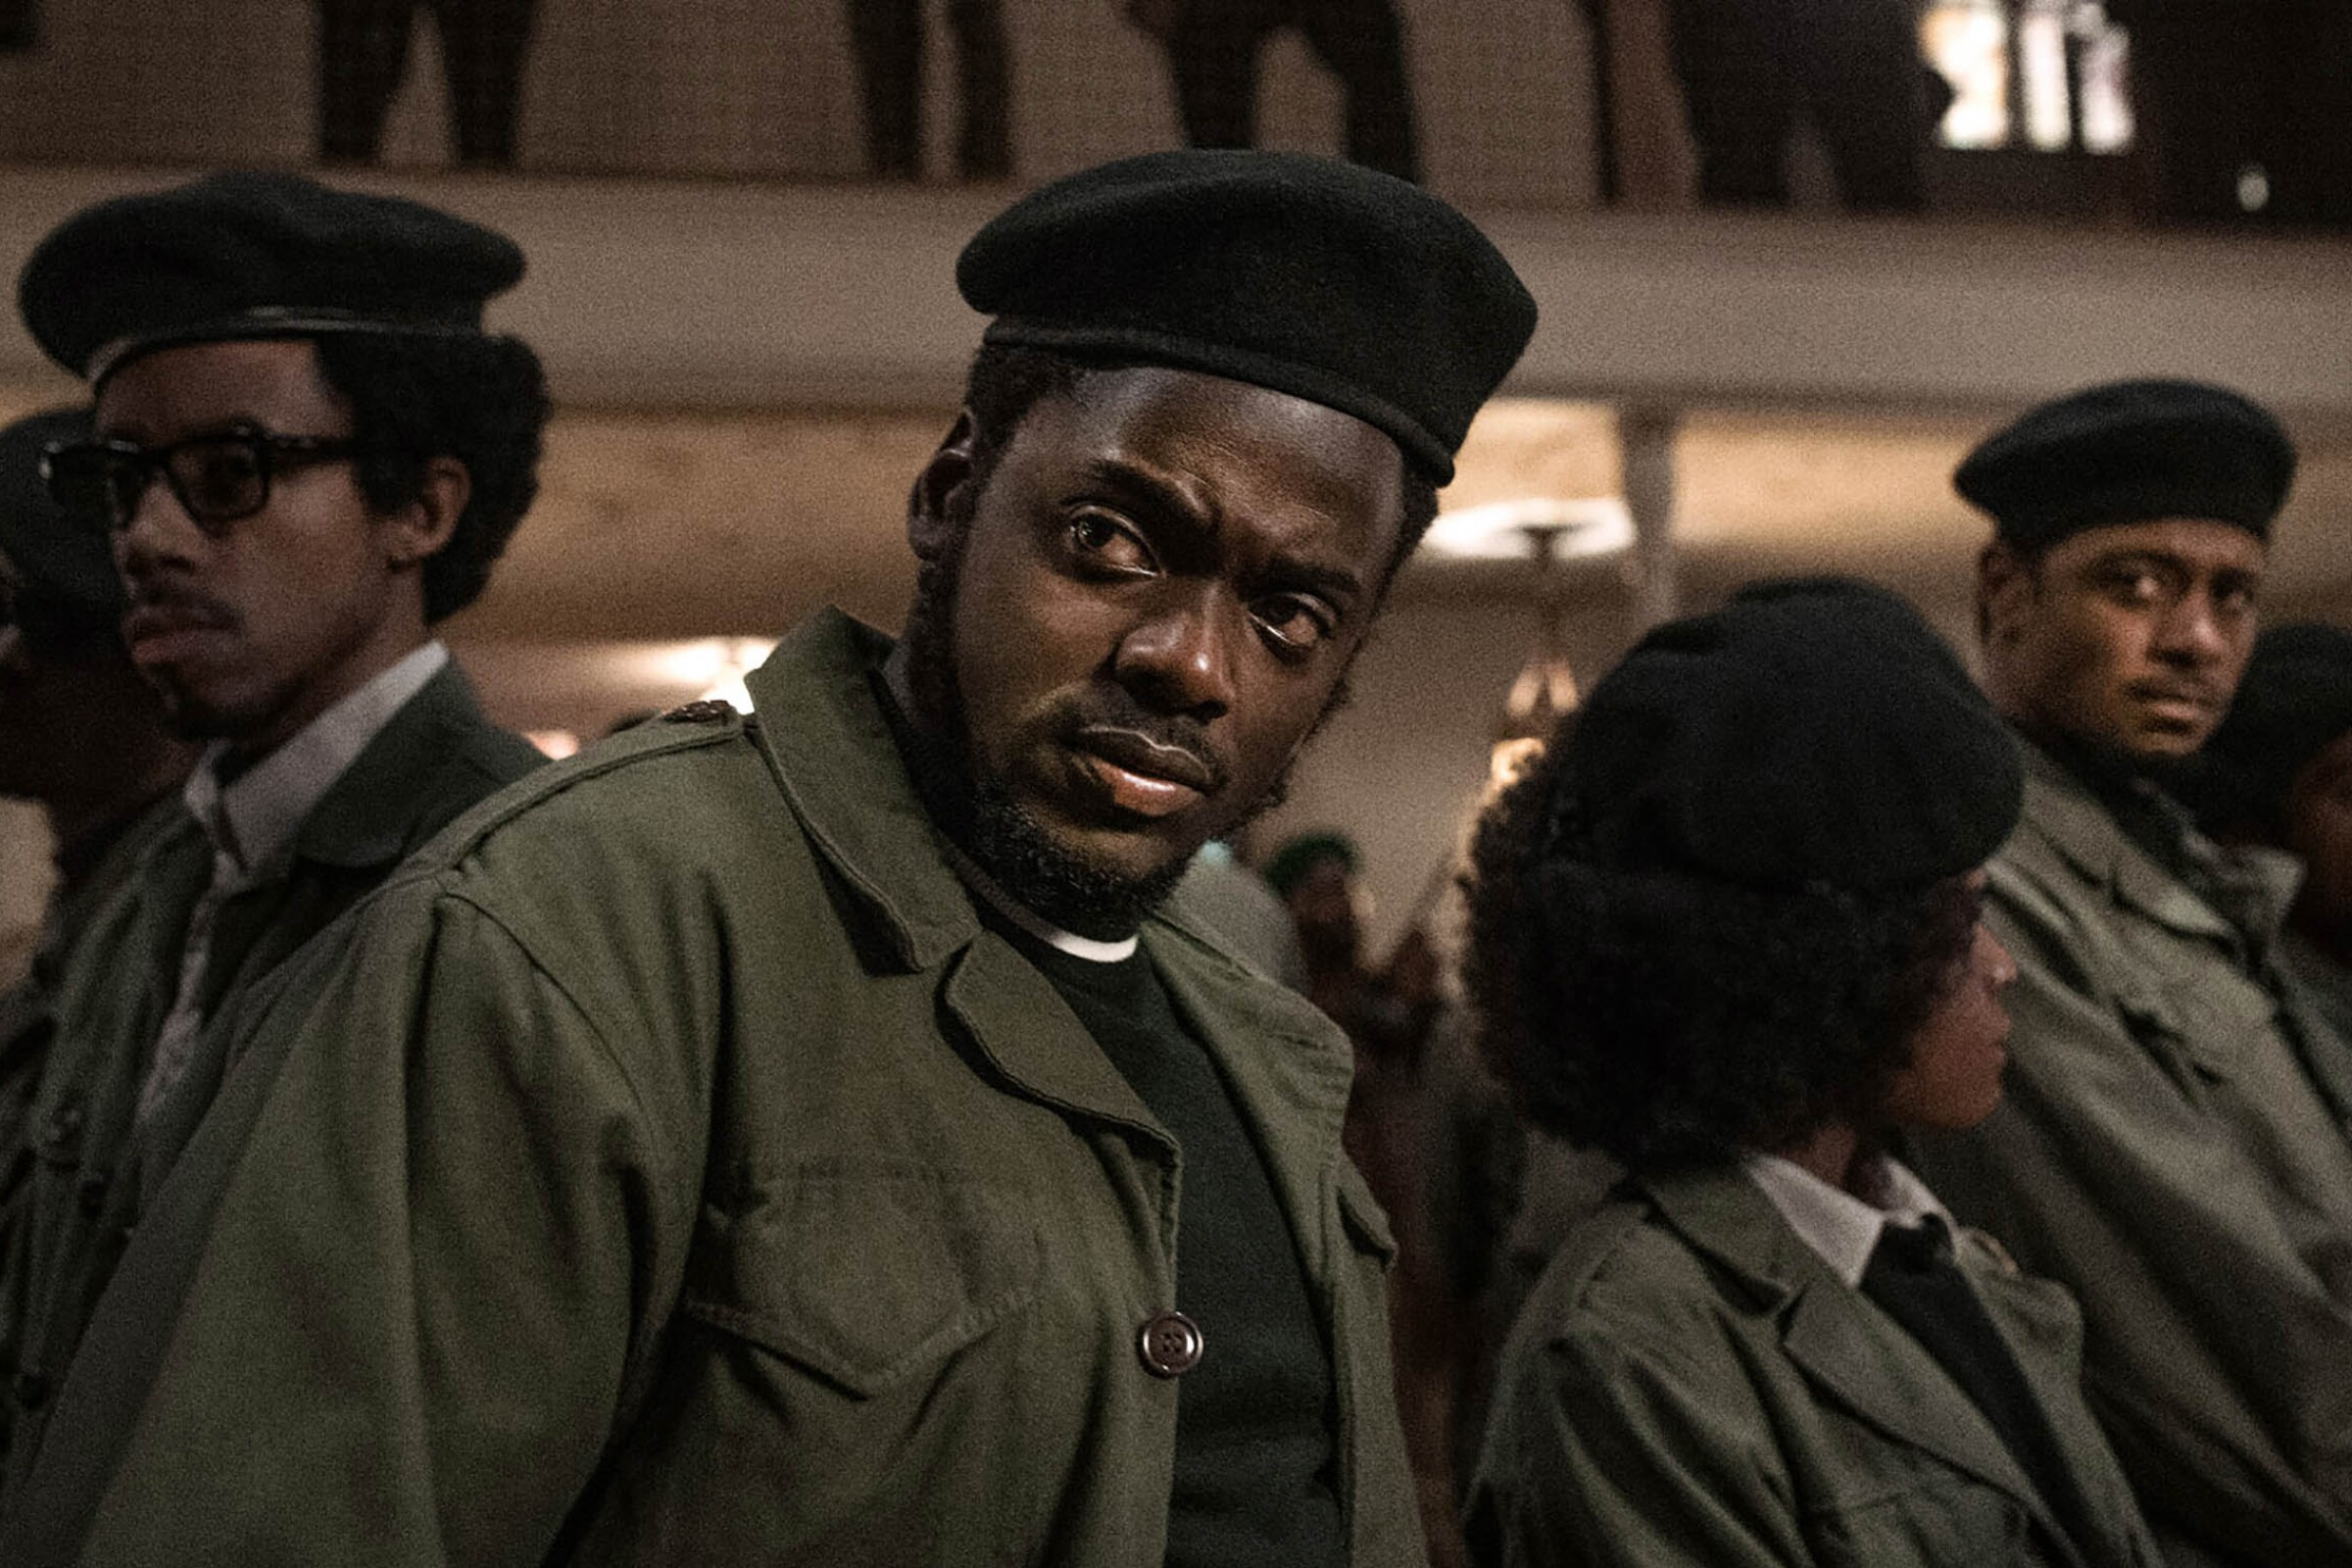 Darrel Britt-Gibson, Daniel Kaluuya and Lakeith Stanfield appear in 'Judas and the Black Messiah', directed by Shaka King